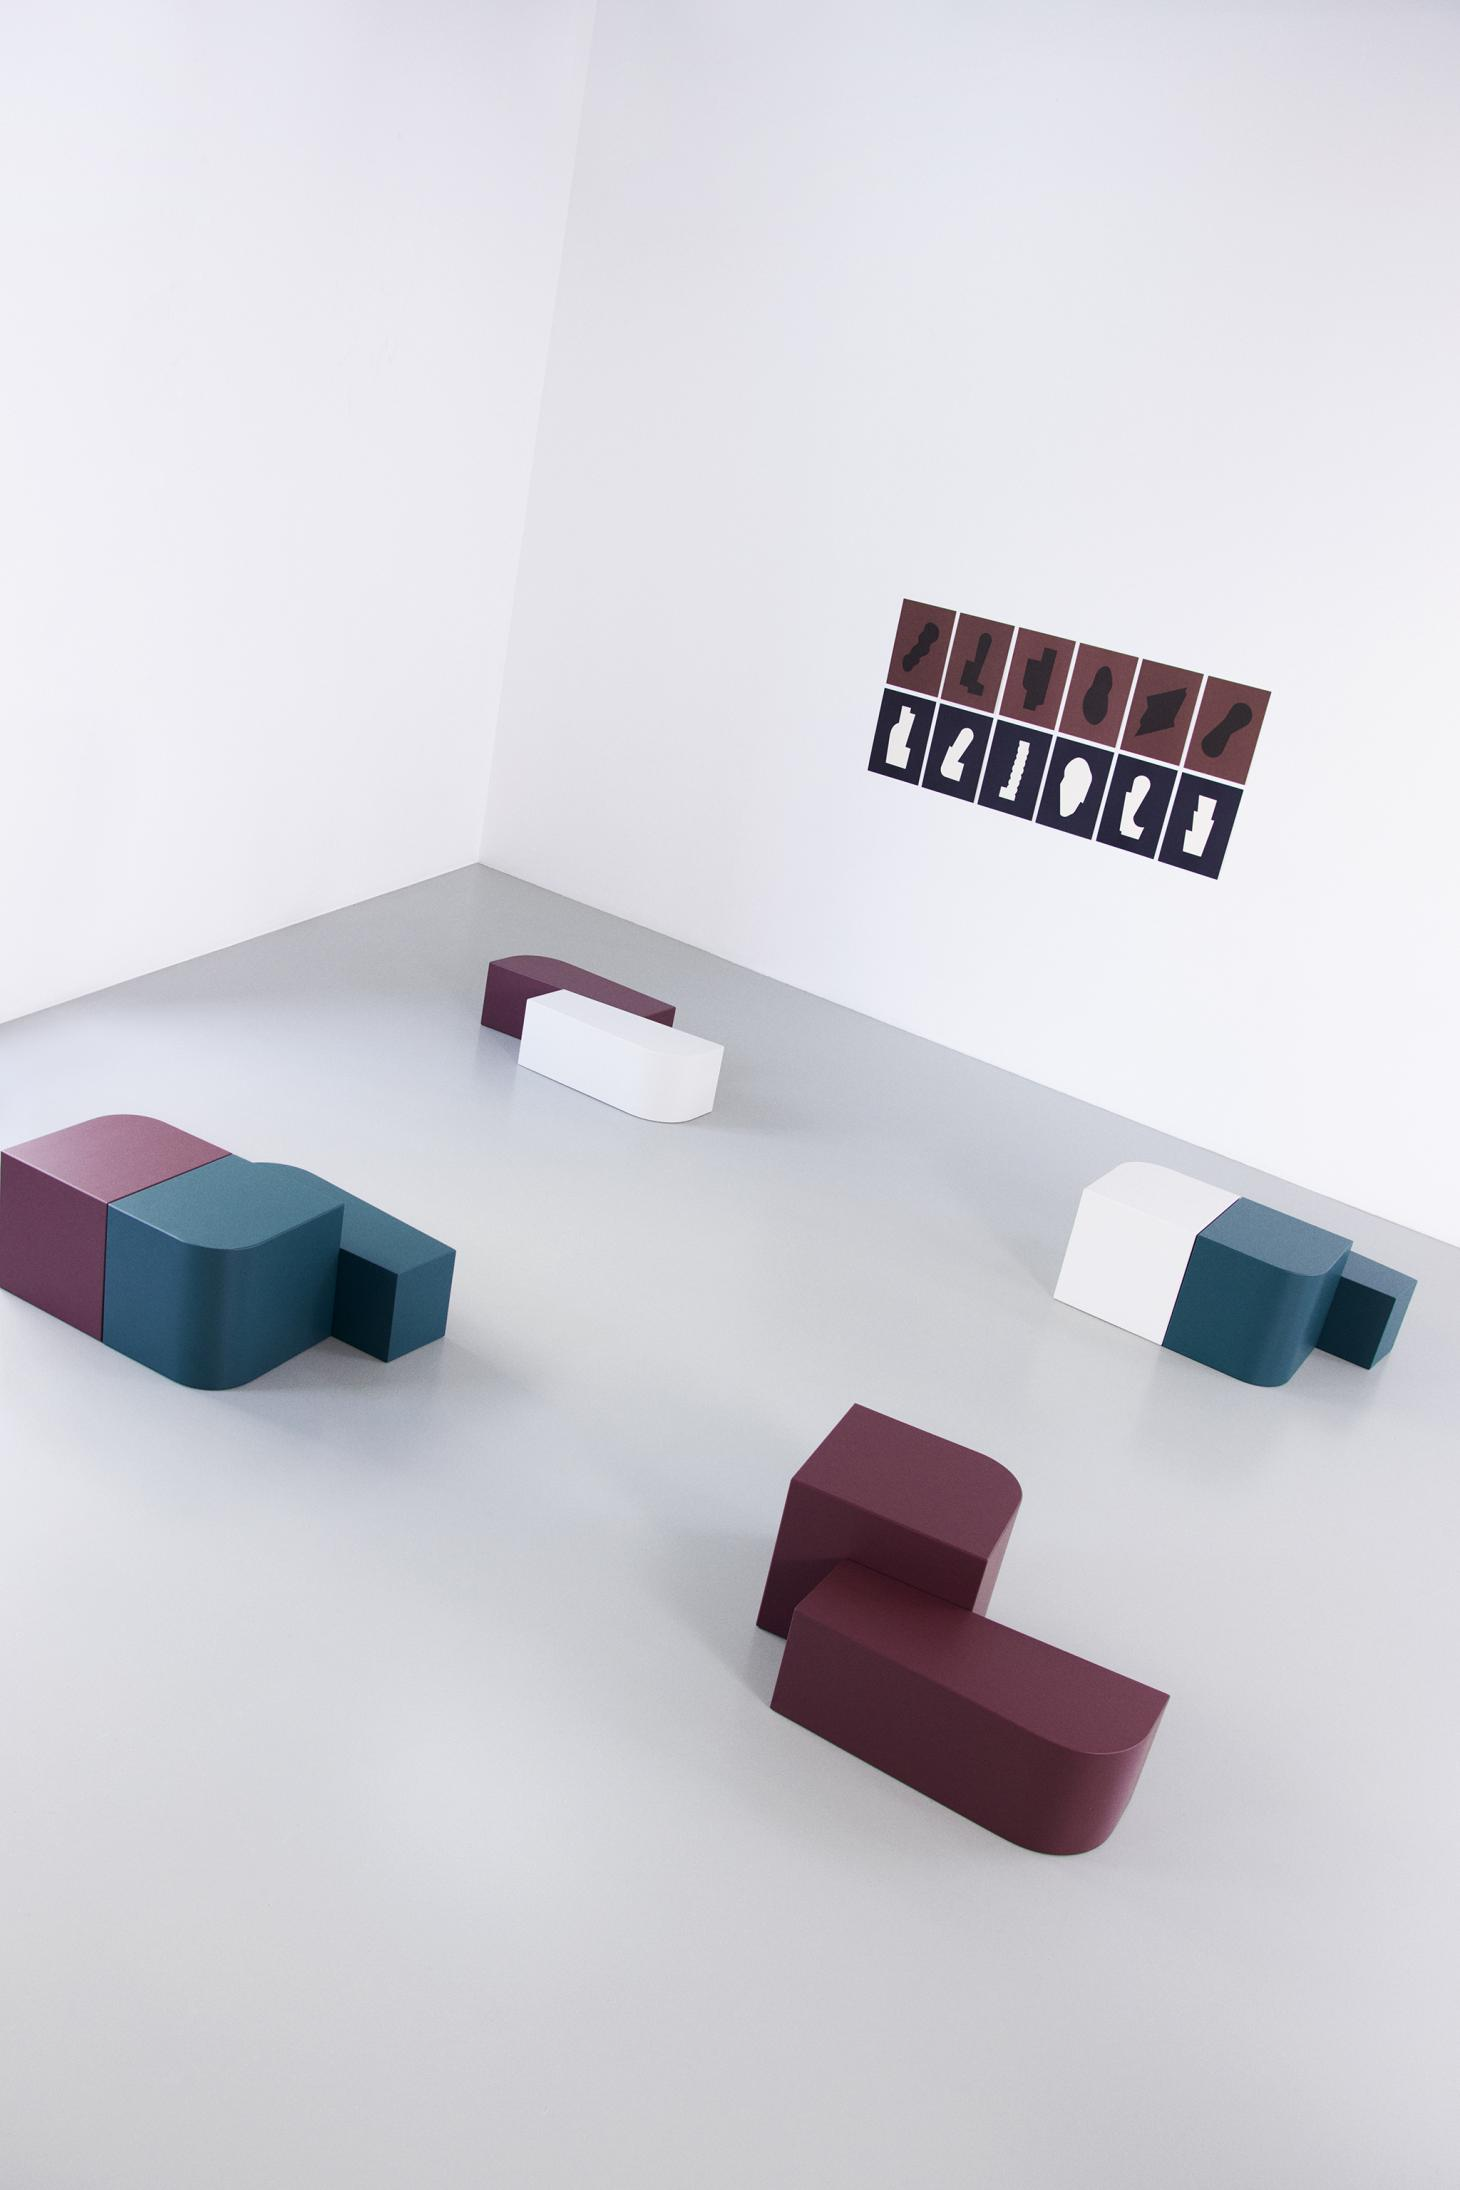 Lacquered side tables in green, burgundy, white with art posters on the wall featuring the same geometric shapes